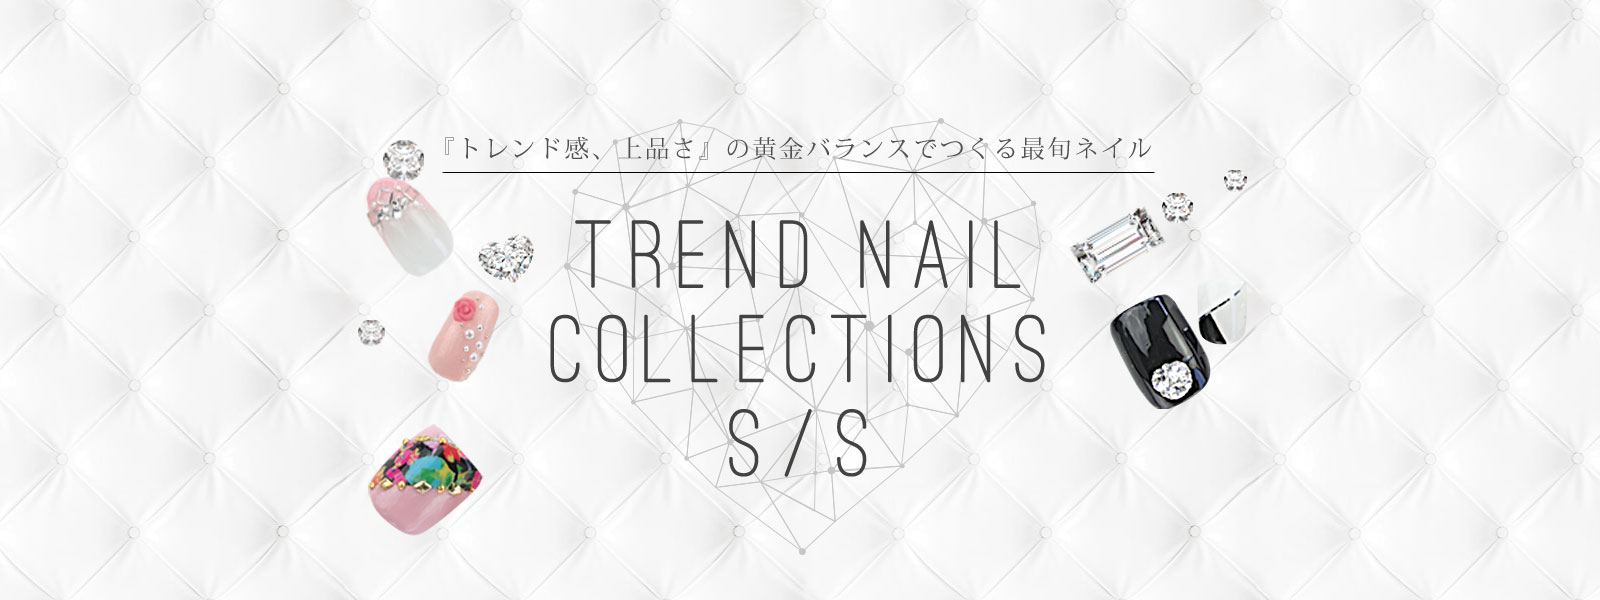 Trend Nail Collections S/S